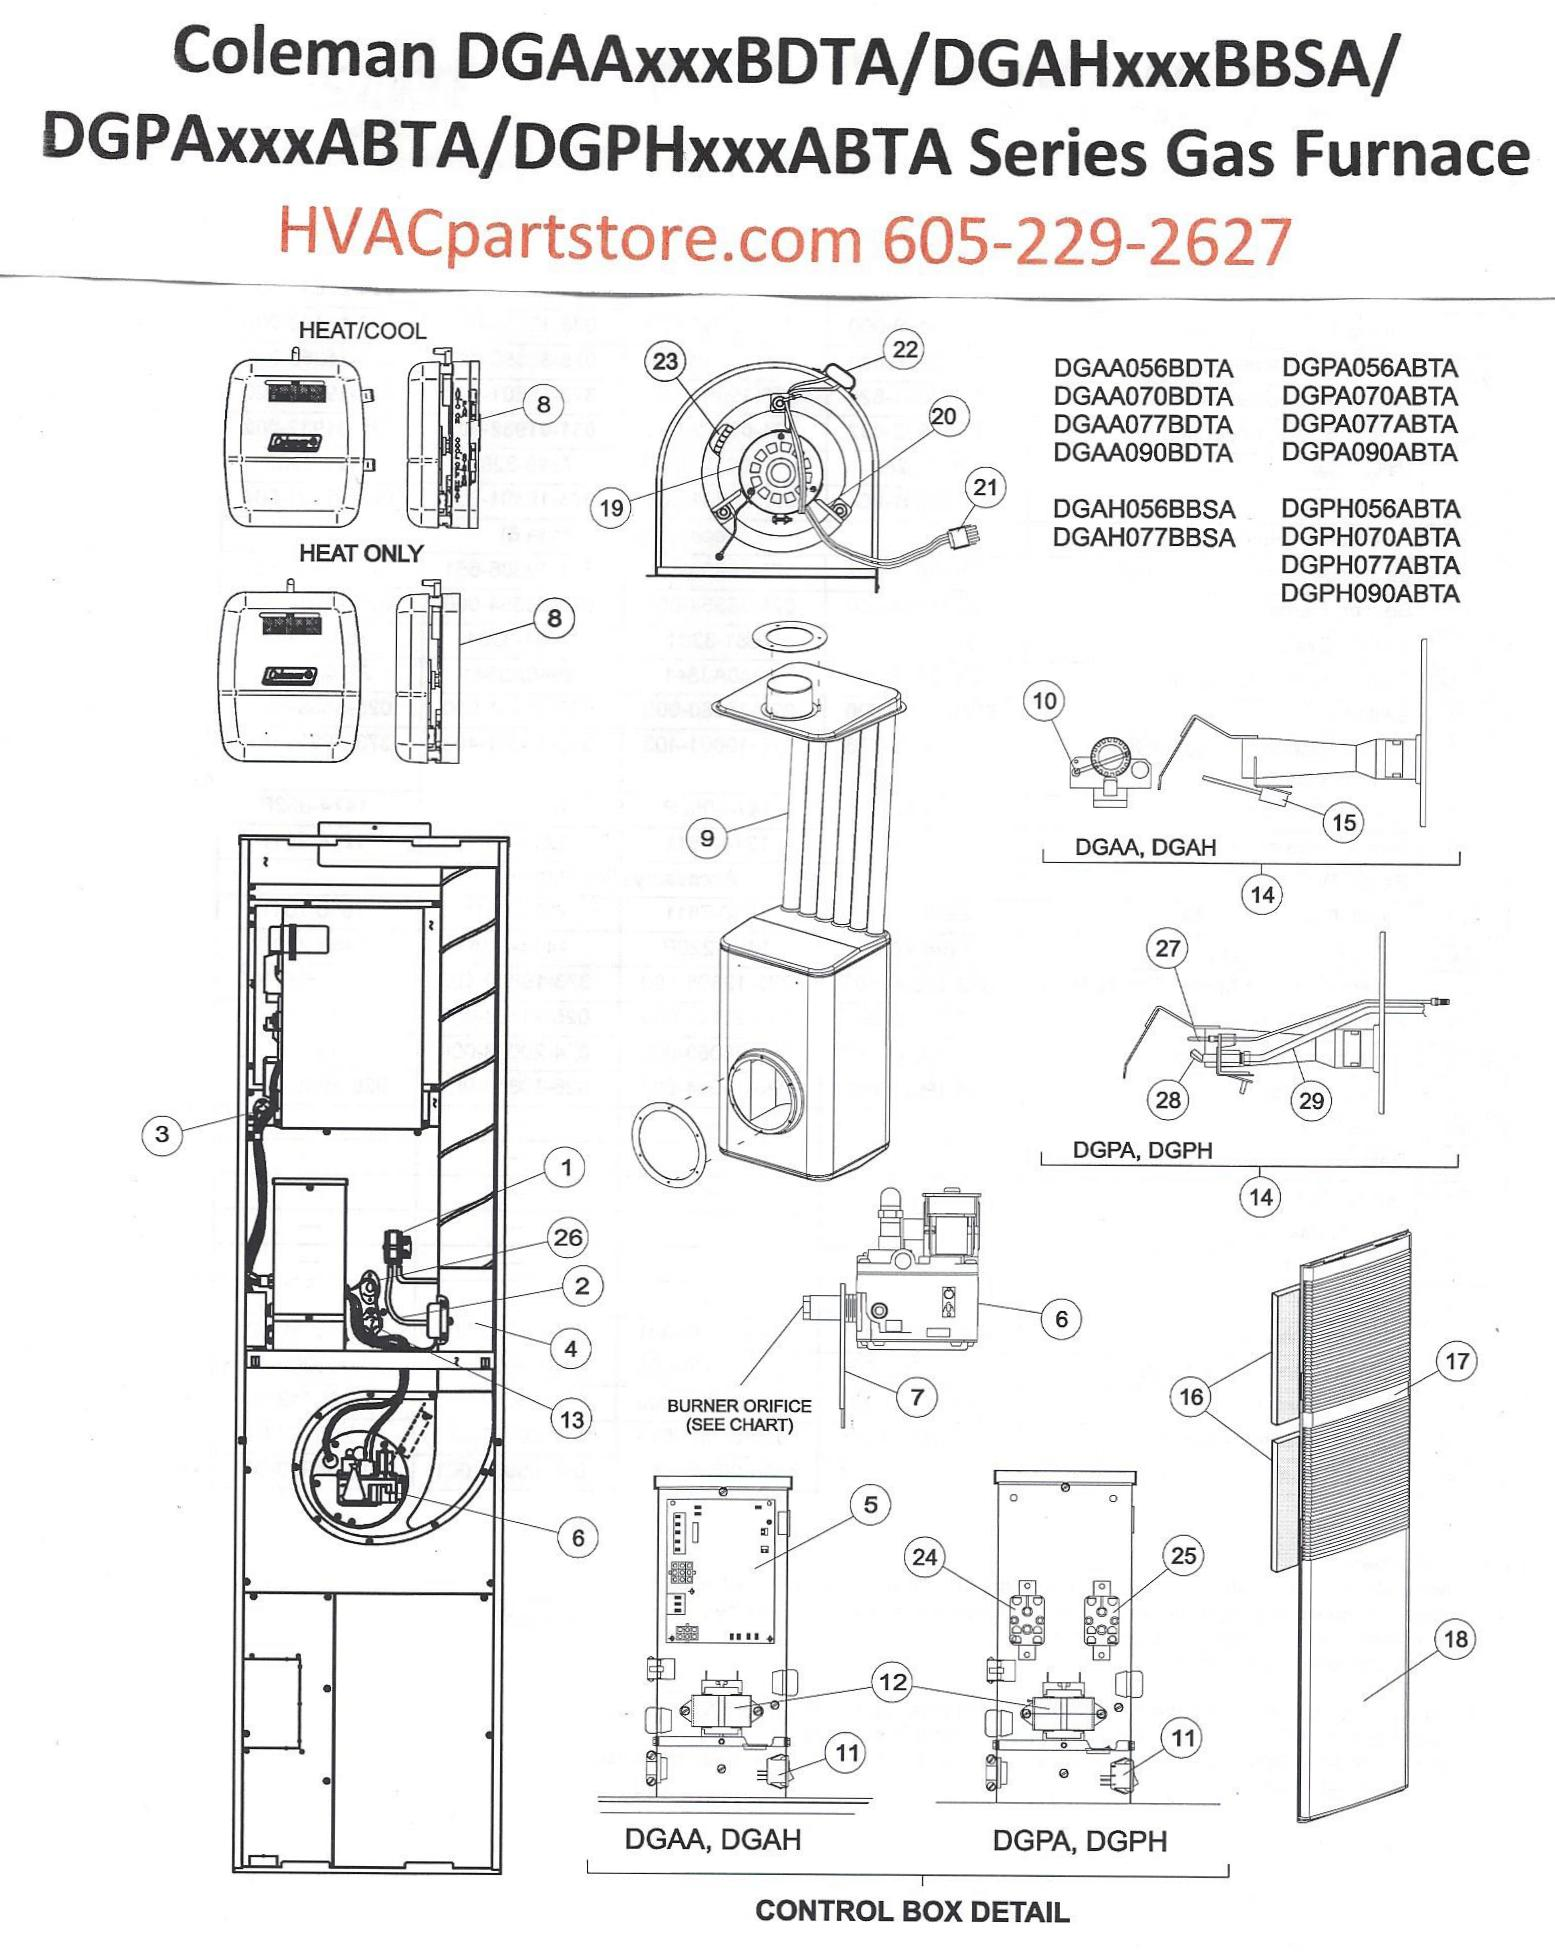 coleman wiring diagram manual coleman image wiring dgah056bbsa coleman gas furnace parts tagged manual on coleman wiring diagram manual